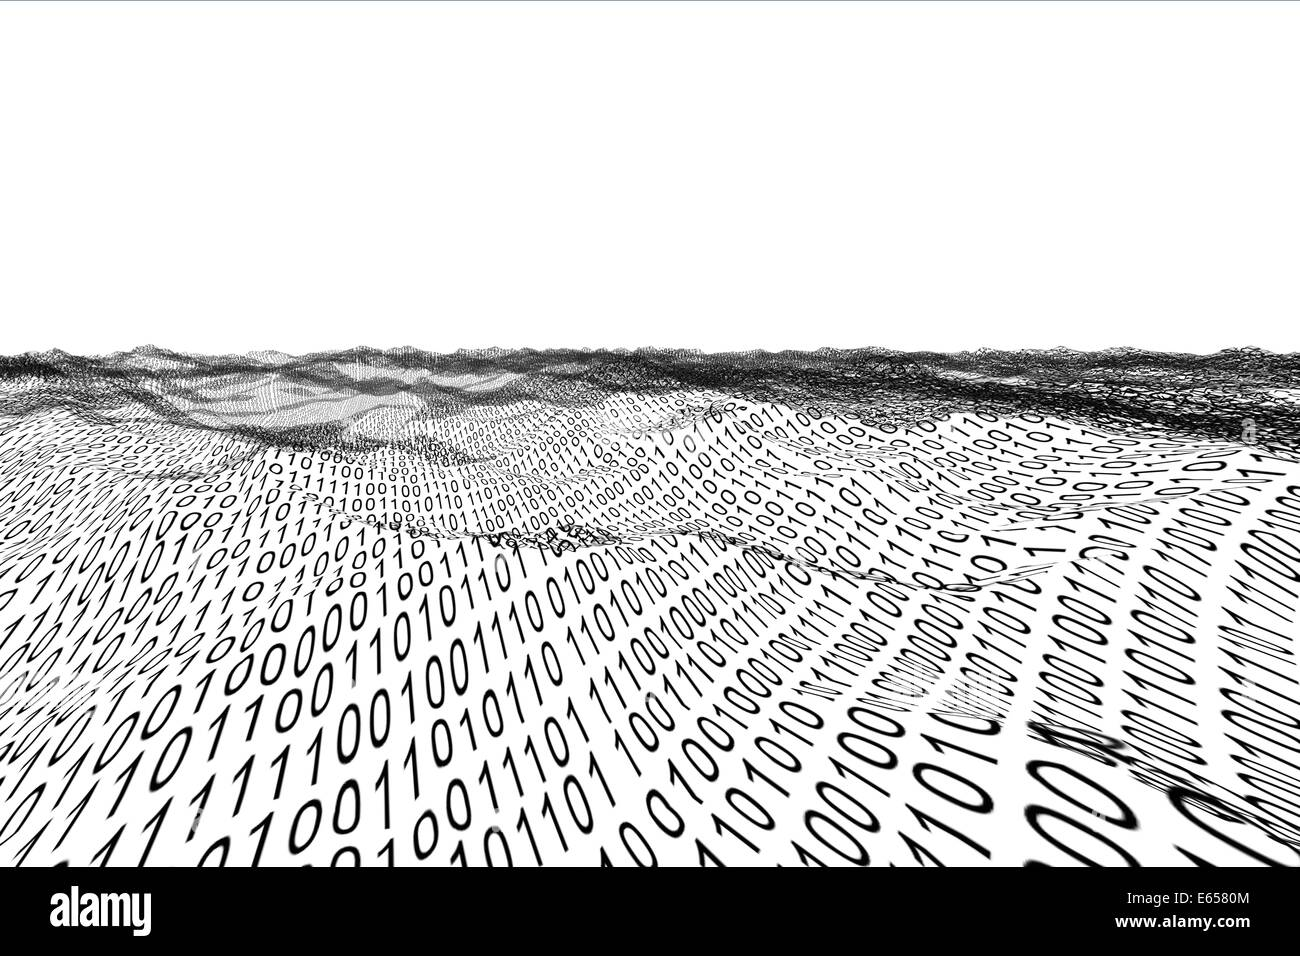 Digitally generated binary code landscape - Stock Image